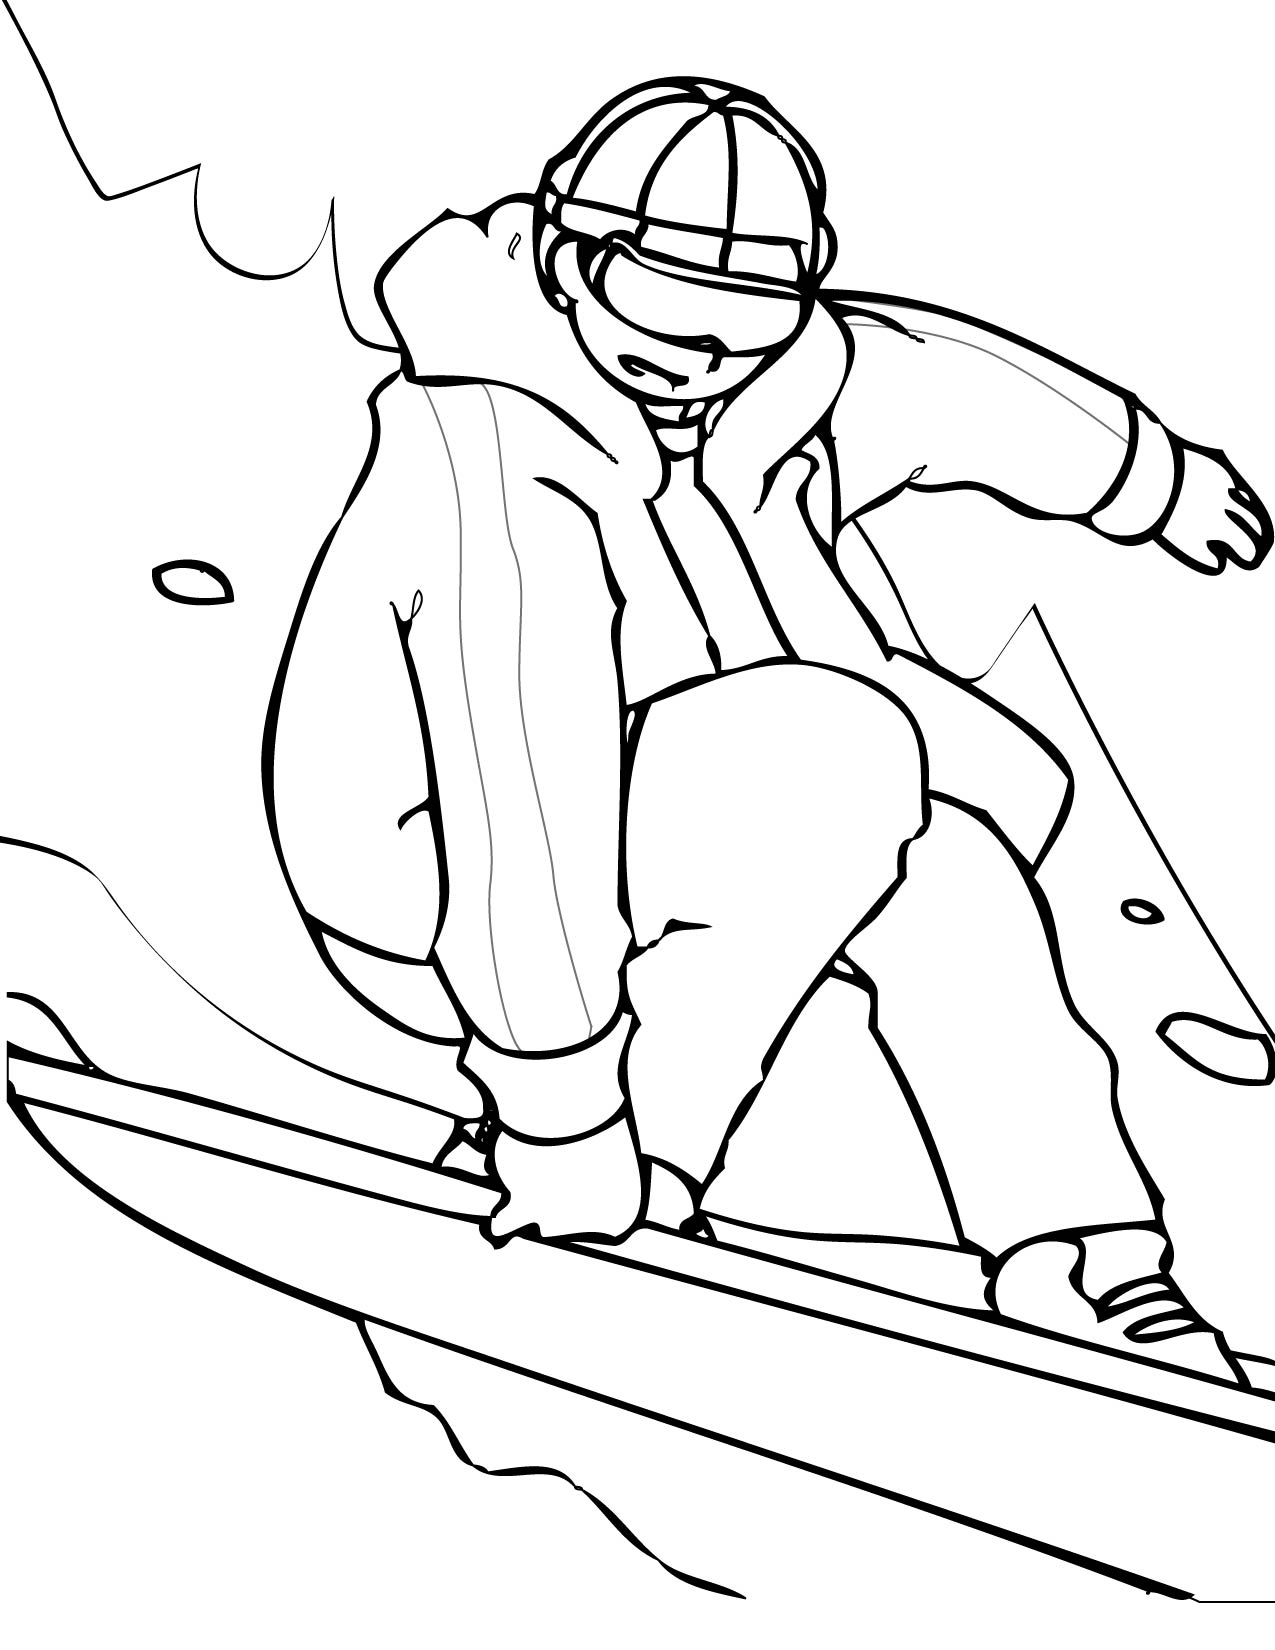 Printable coloring pages sports - Print This Page Winter Sports Coloring Pages Coloring Pages Snowboarding